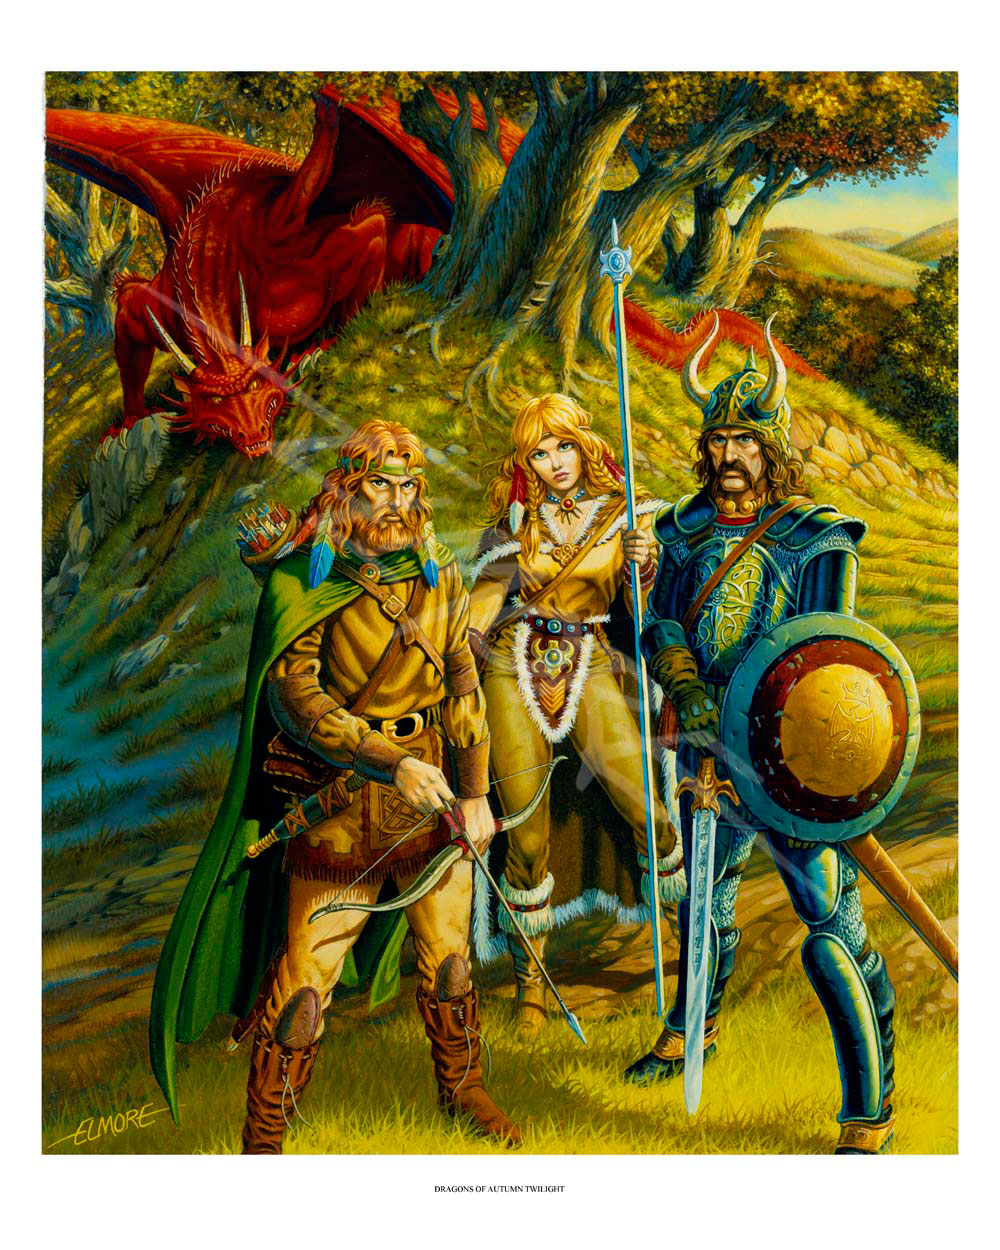 DRAGONLANCE-Dragons-of-Autumn-Twilight.jpg